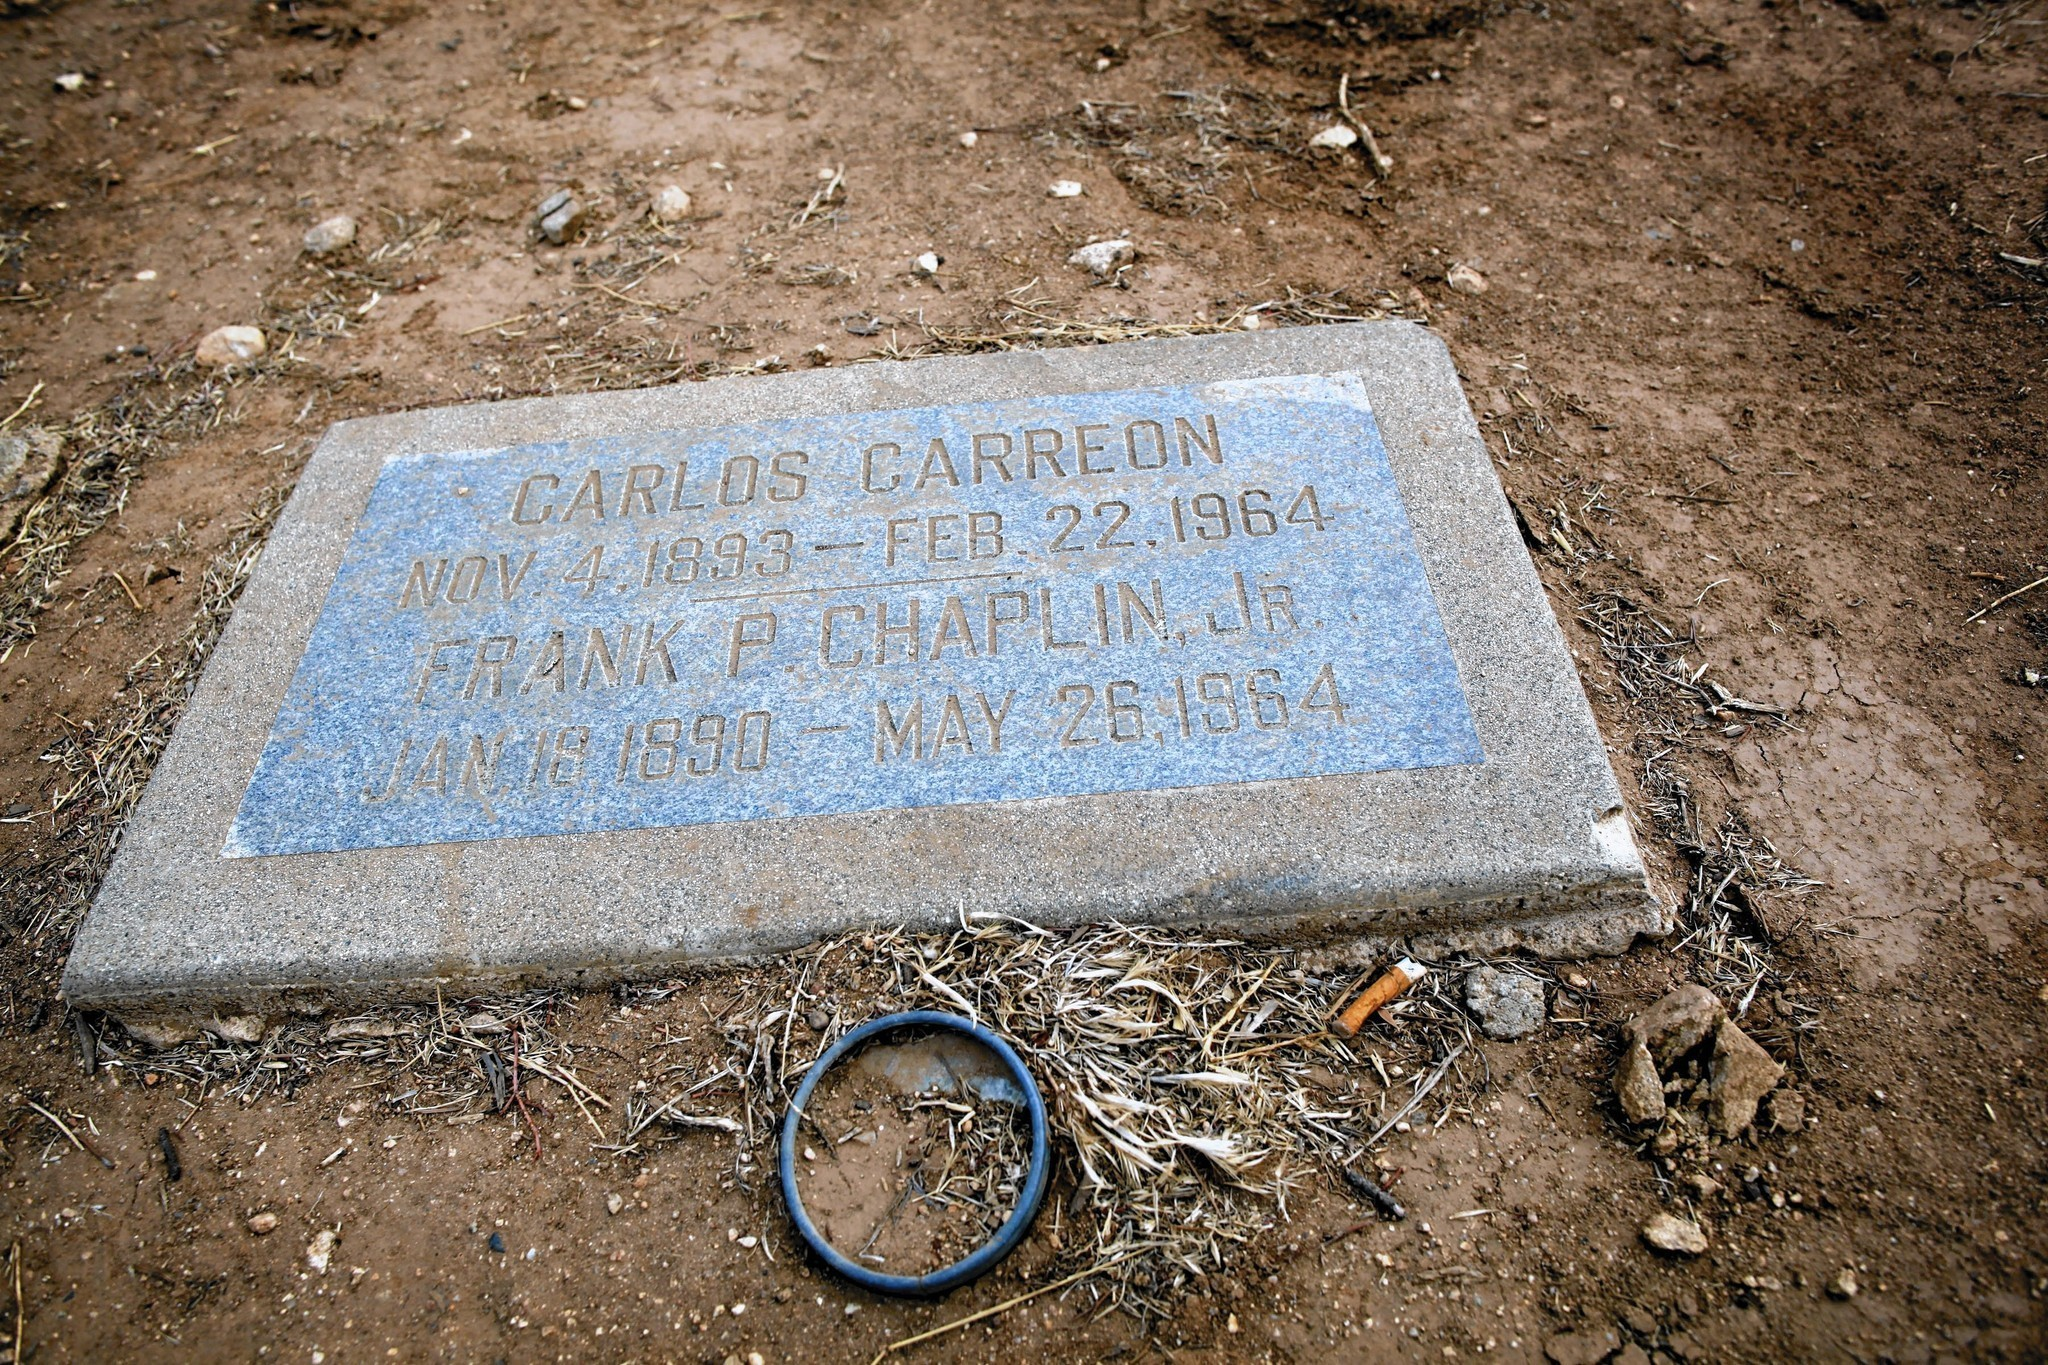 Evergreen Cemetery is awash in history, and drowning in blight